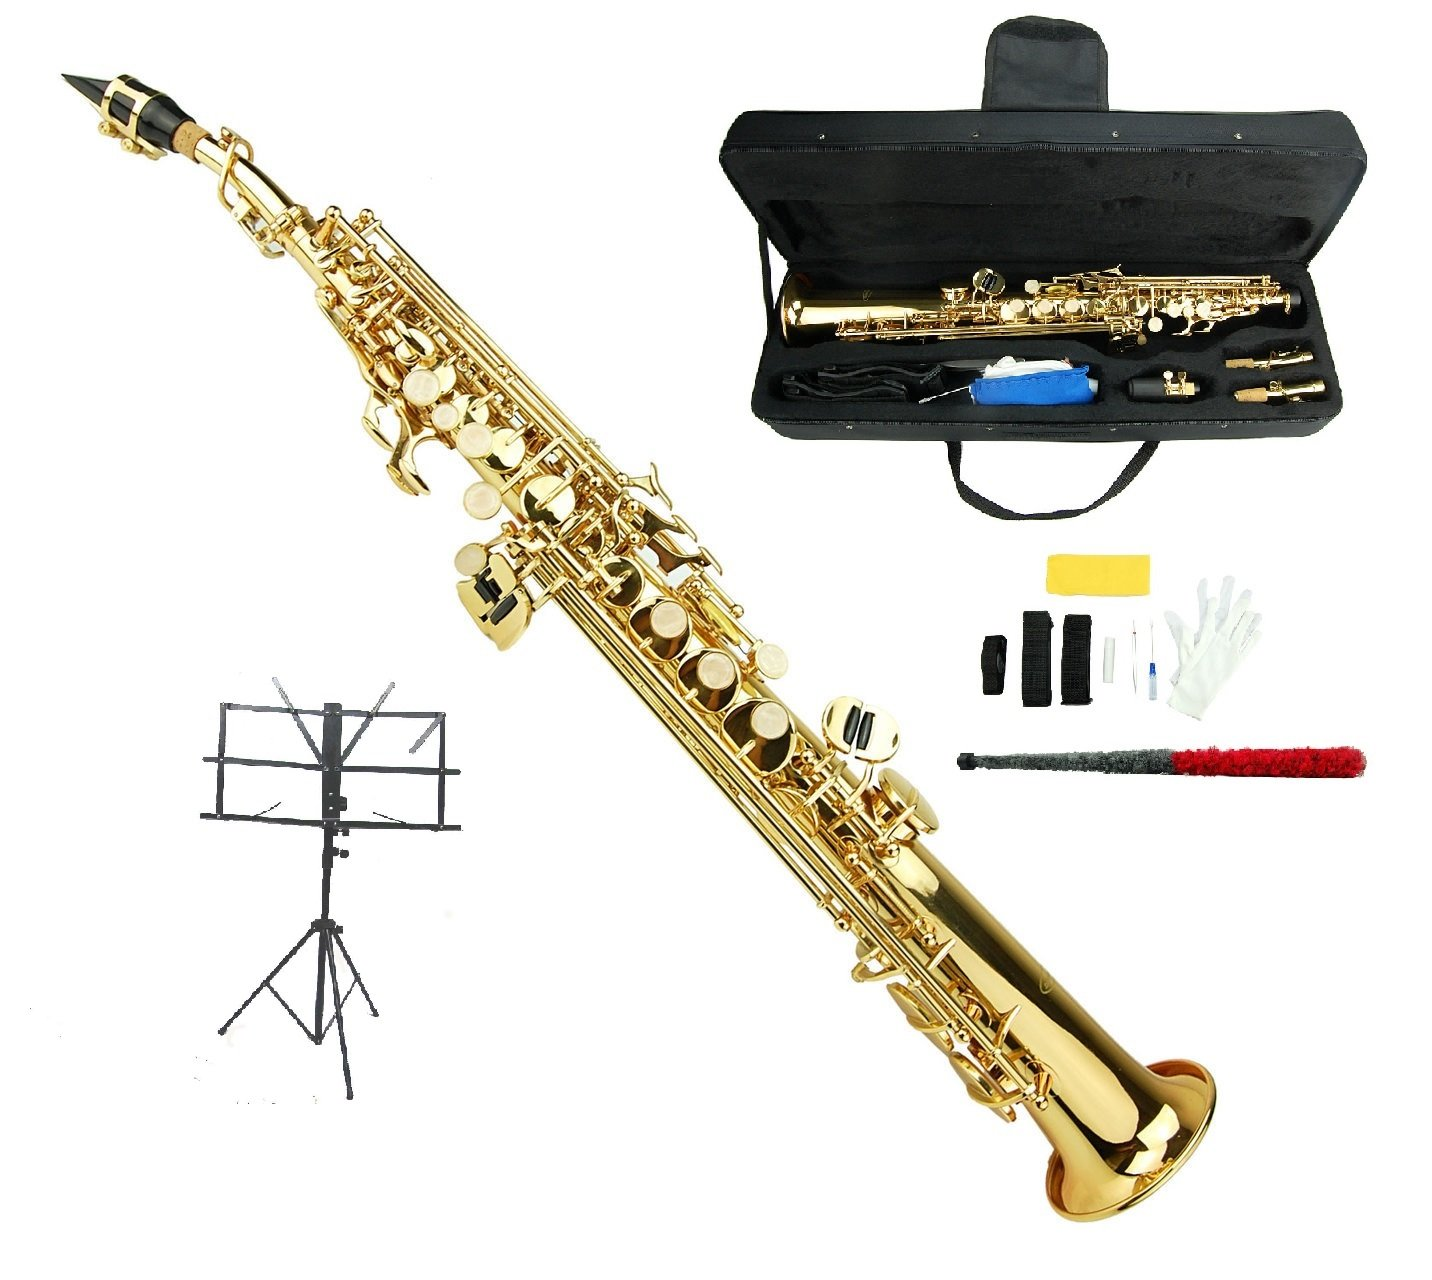 Merano B Flat Gold Soprano Saxophone,Case,Reed,Screw Driver, Nipper,A Pair of Gloves,Soft Cleaning Cloth, Music Stand by Merano